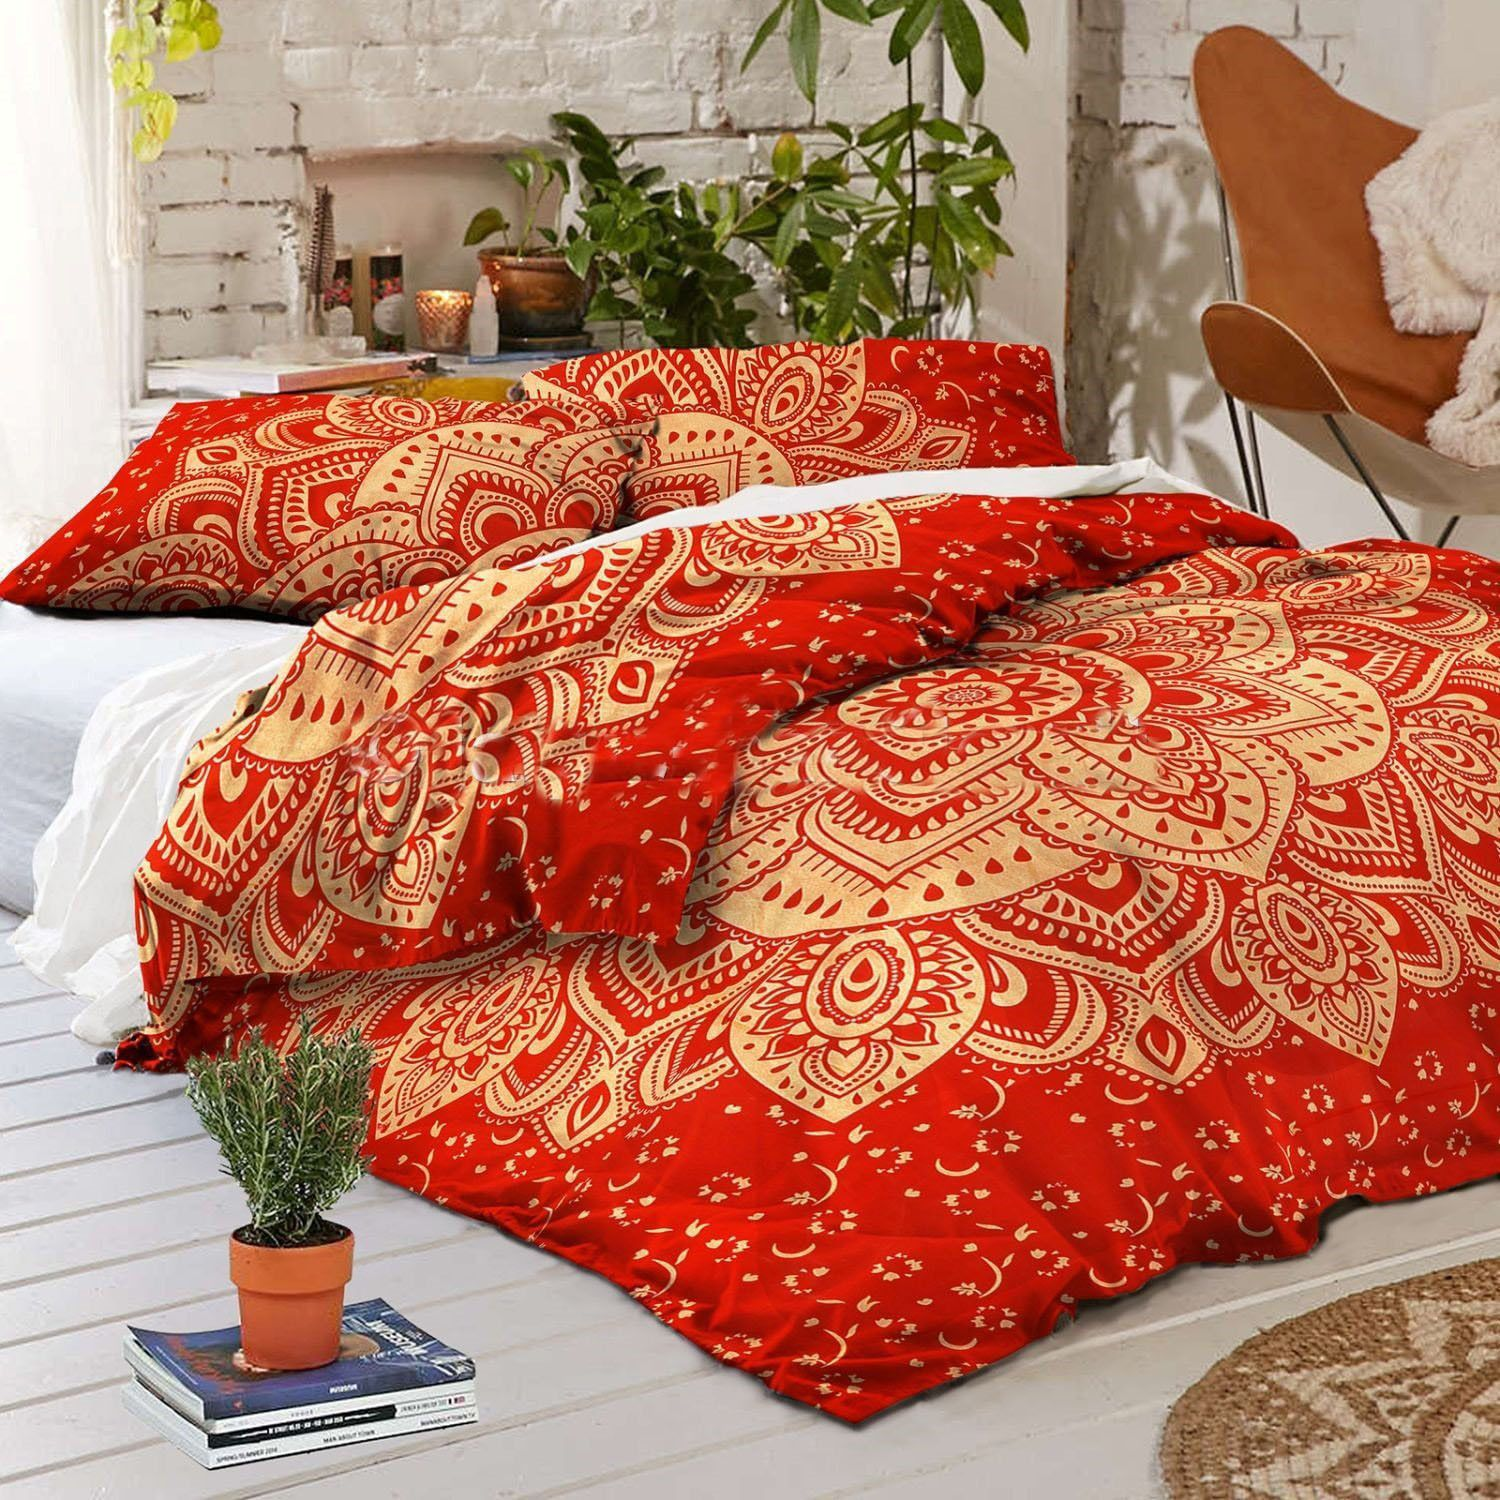 quilt dp bedding paisley com floral garden bedspread bohemian set multi home party queen amazon pieces reversible kitchen dada